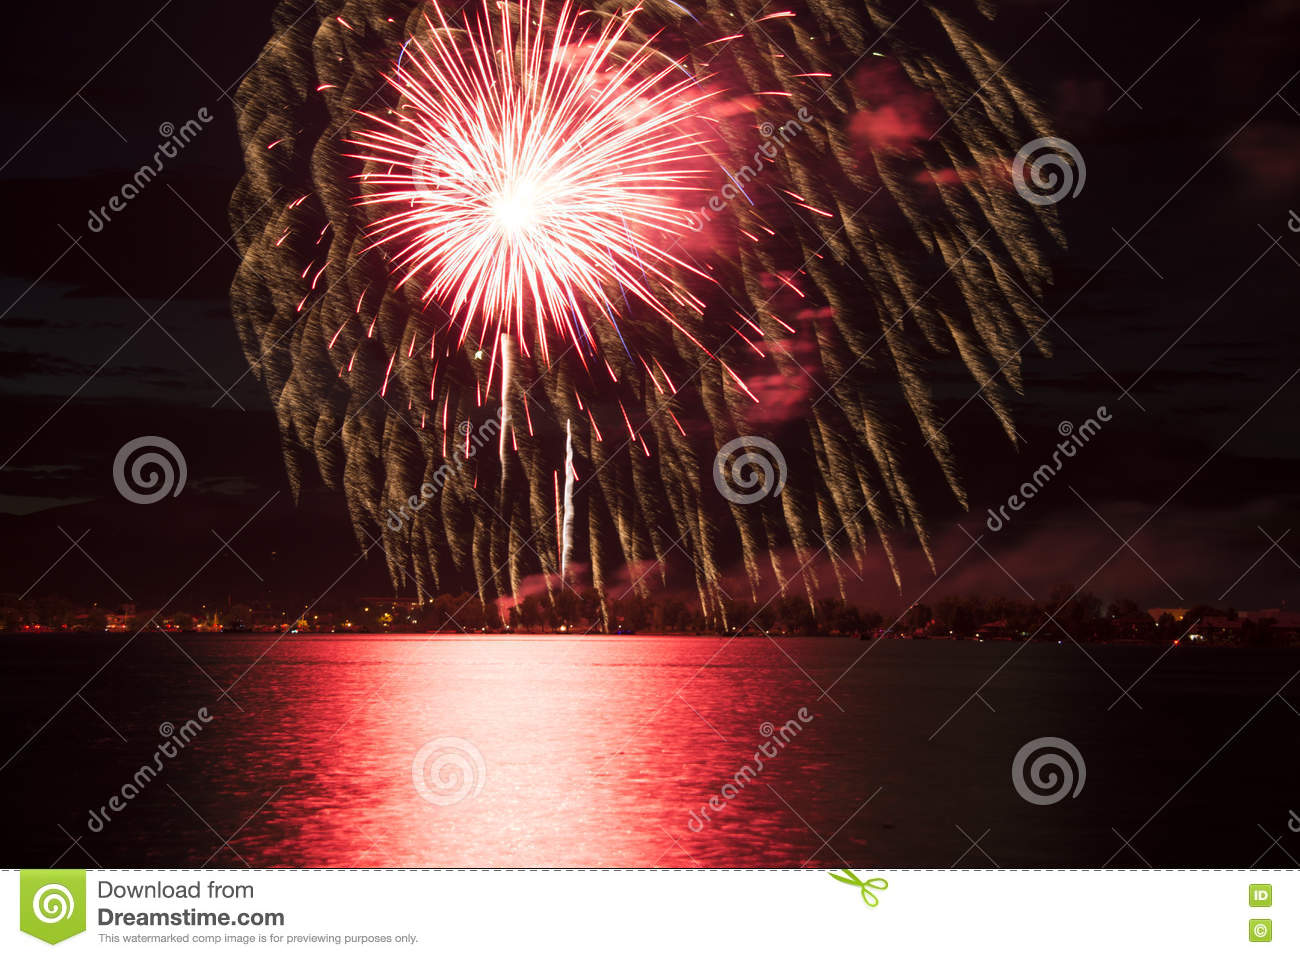 Red Fireworks Free Stock Photo: Red Fireworks Reflecting Over Lake Stock Image